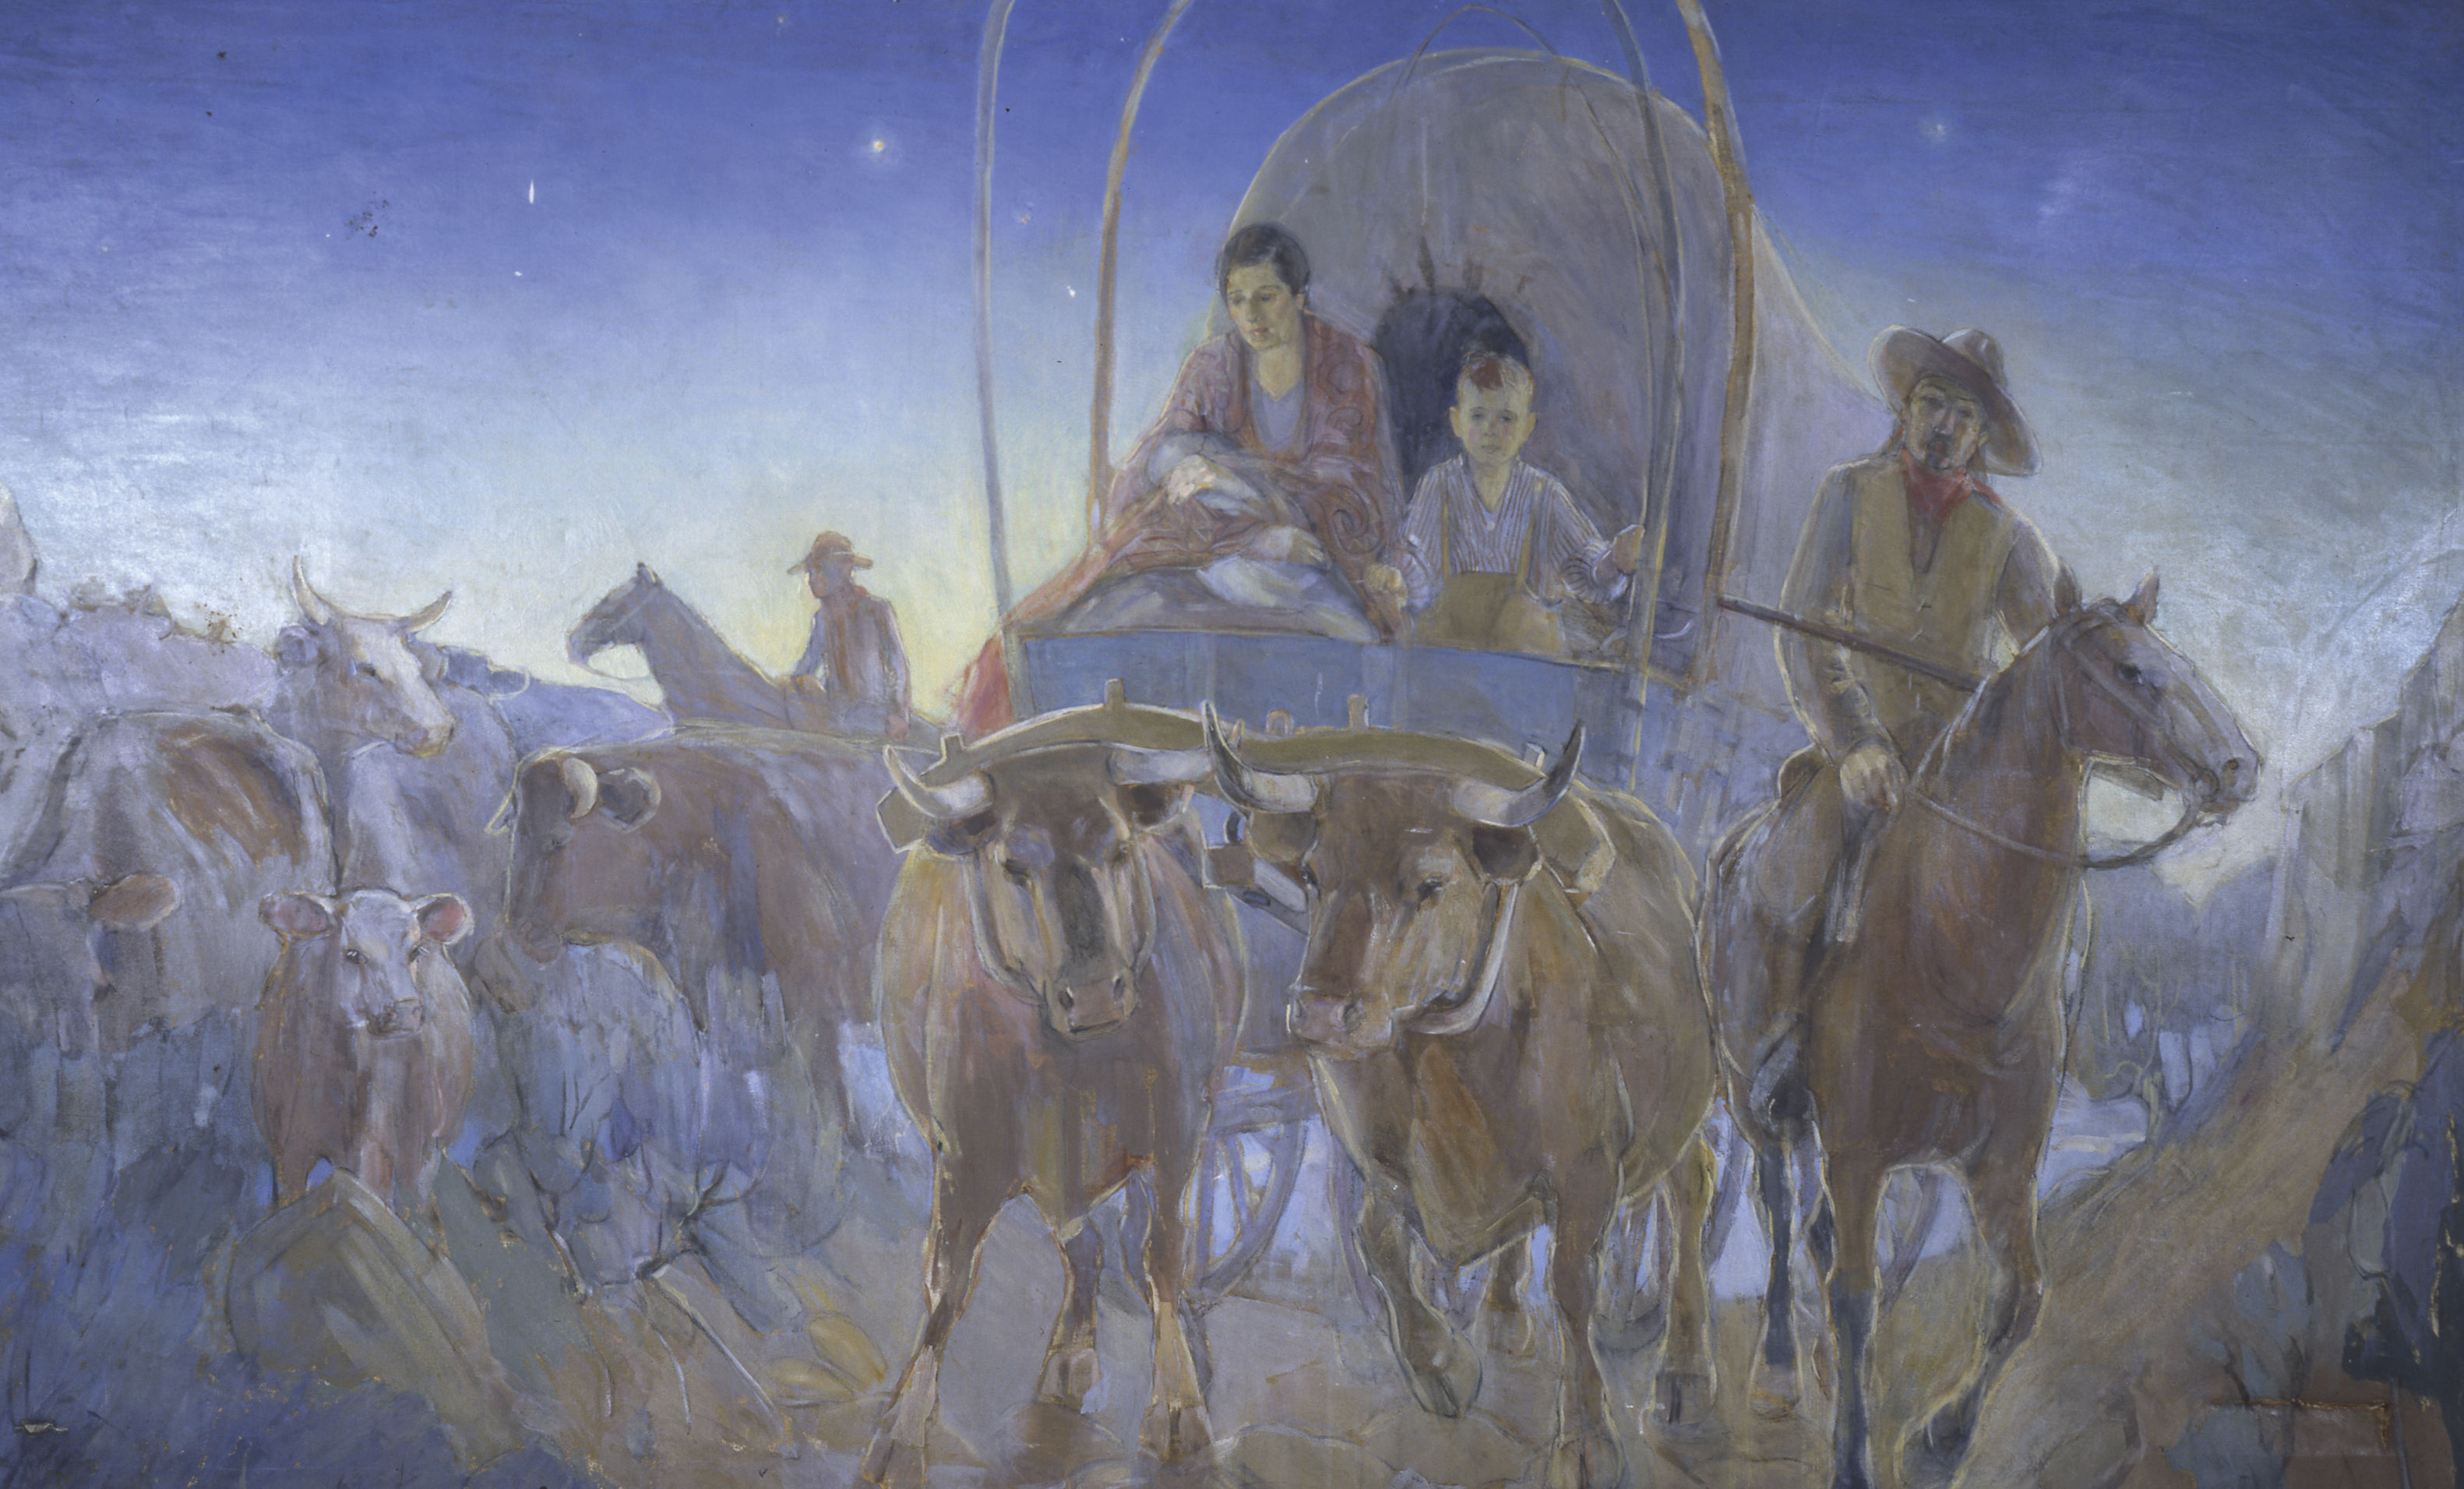 Covered Wagon Pioneers, Madonna at Dawn, by Minerva K. Teichert